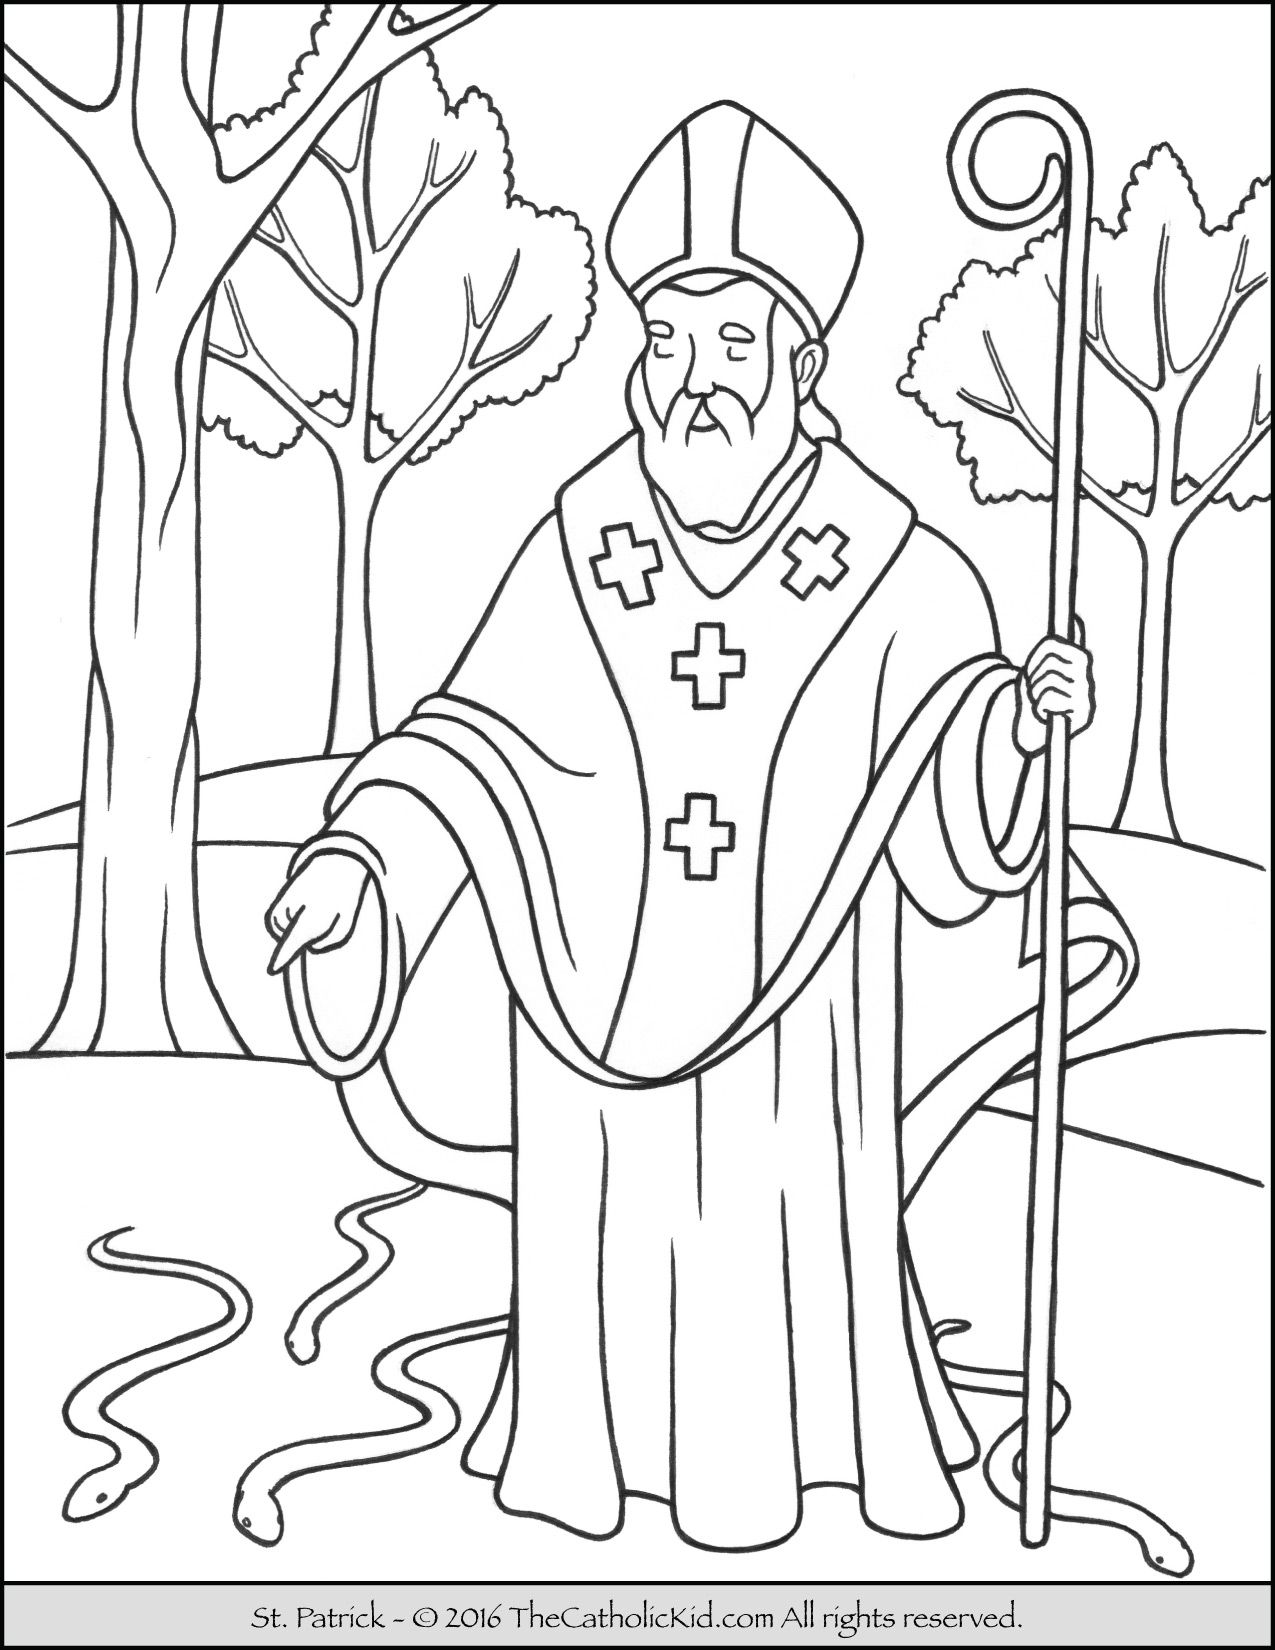 Saint Patrick Coloring Page The Catholic Kid Coloring